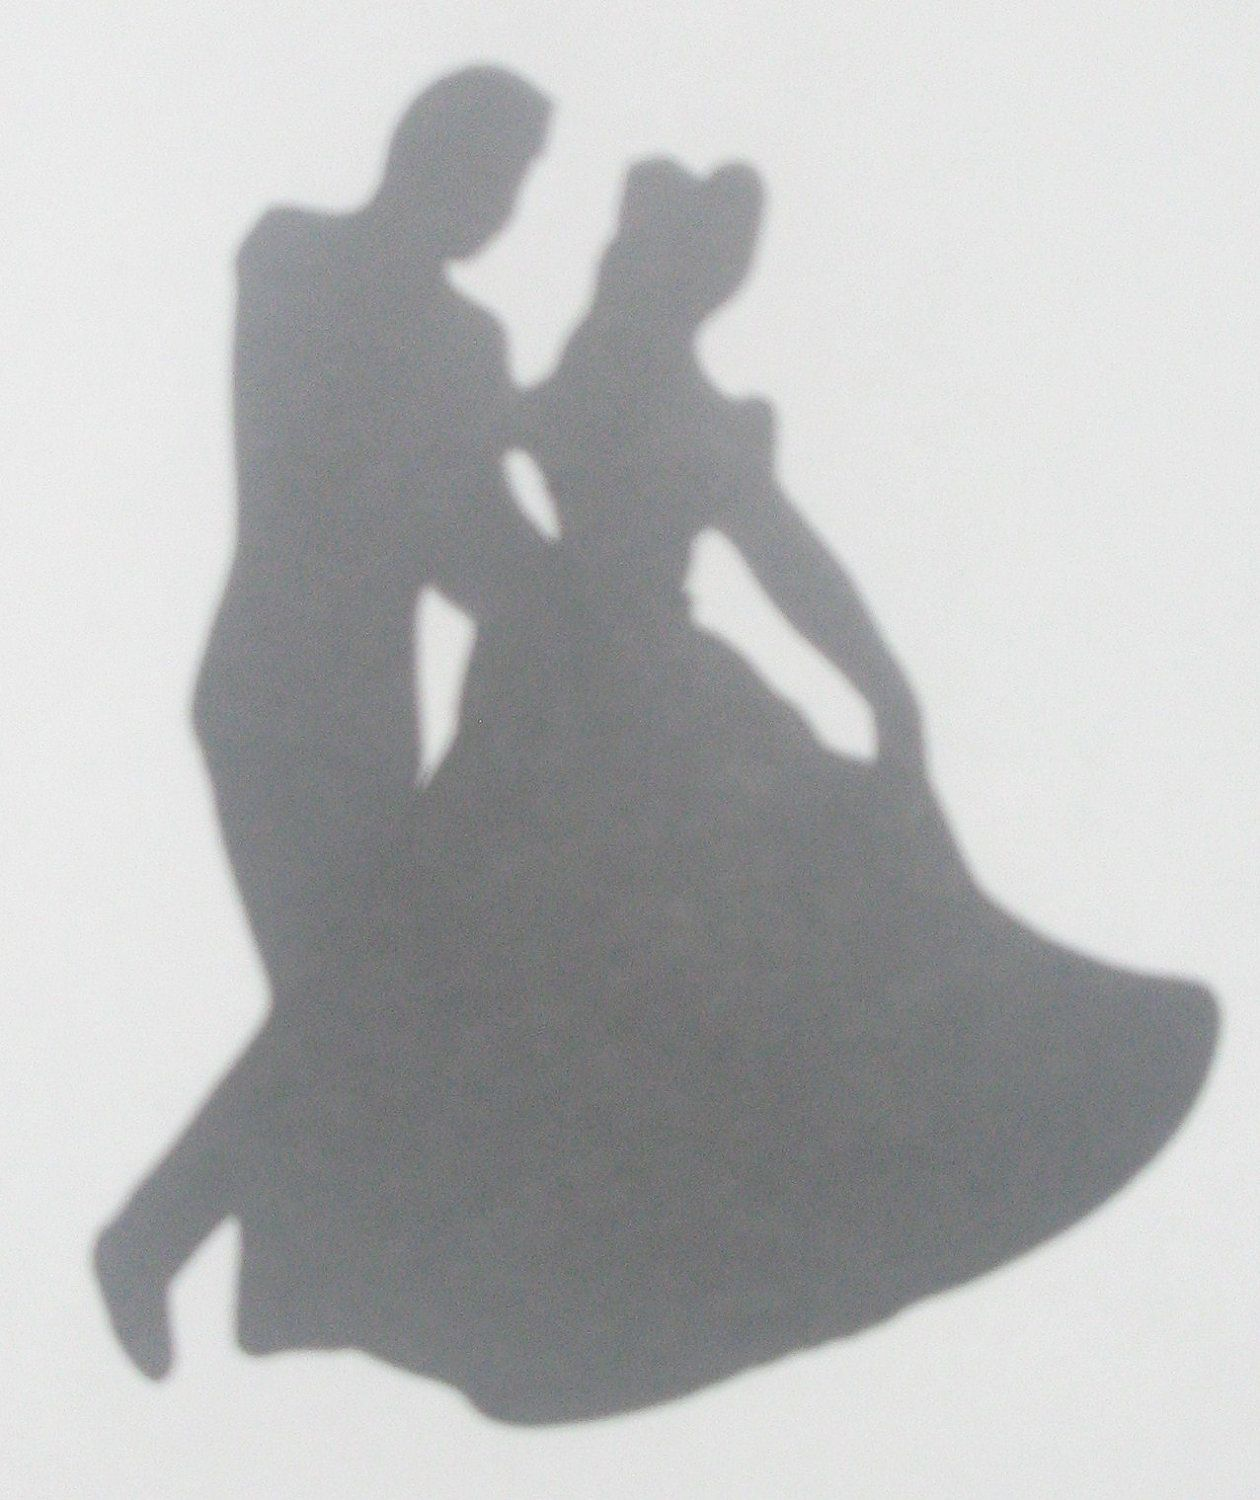 Disney Prince And Princess Silhouette Disney Princess And Prince